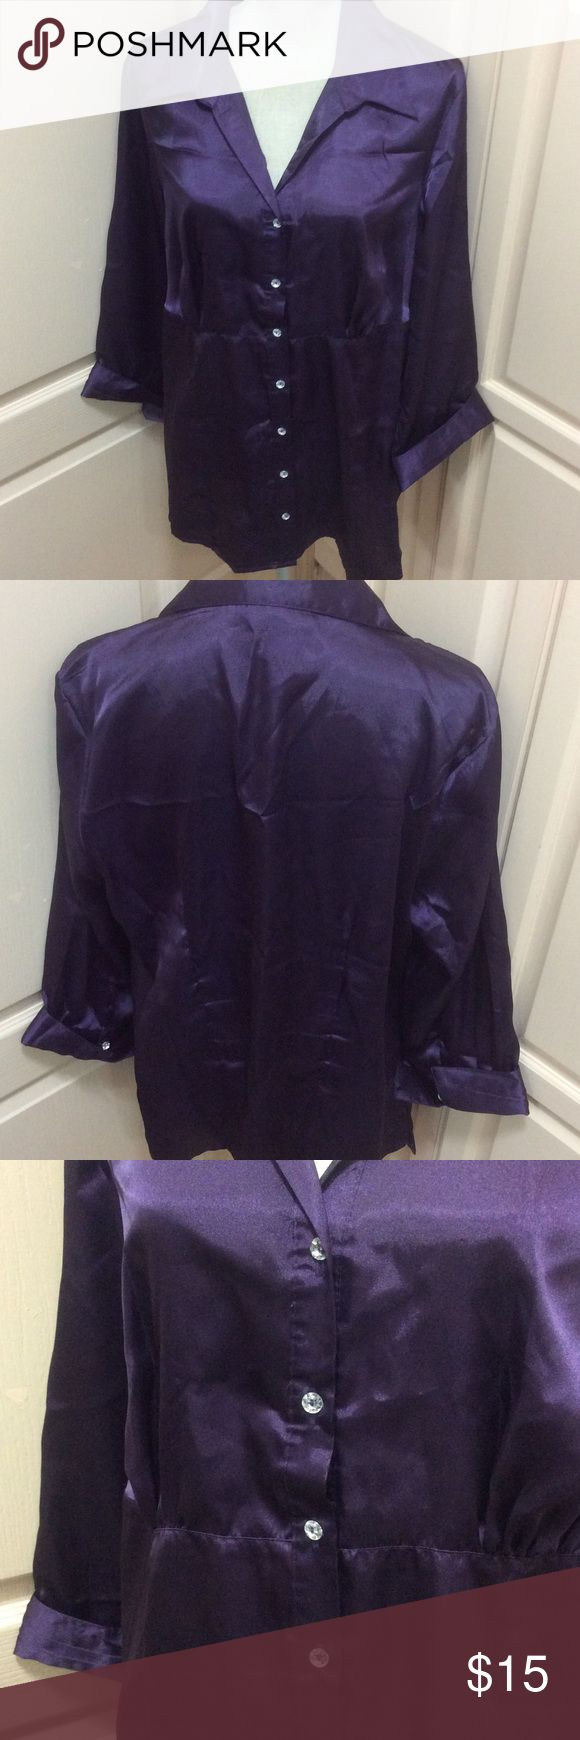 PURPLE SHIRT Elegant shirt will dress up any outfit. Tops Blouses